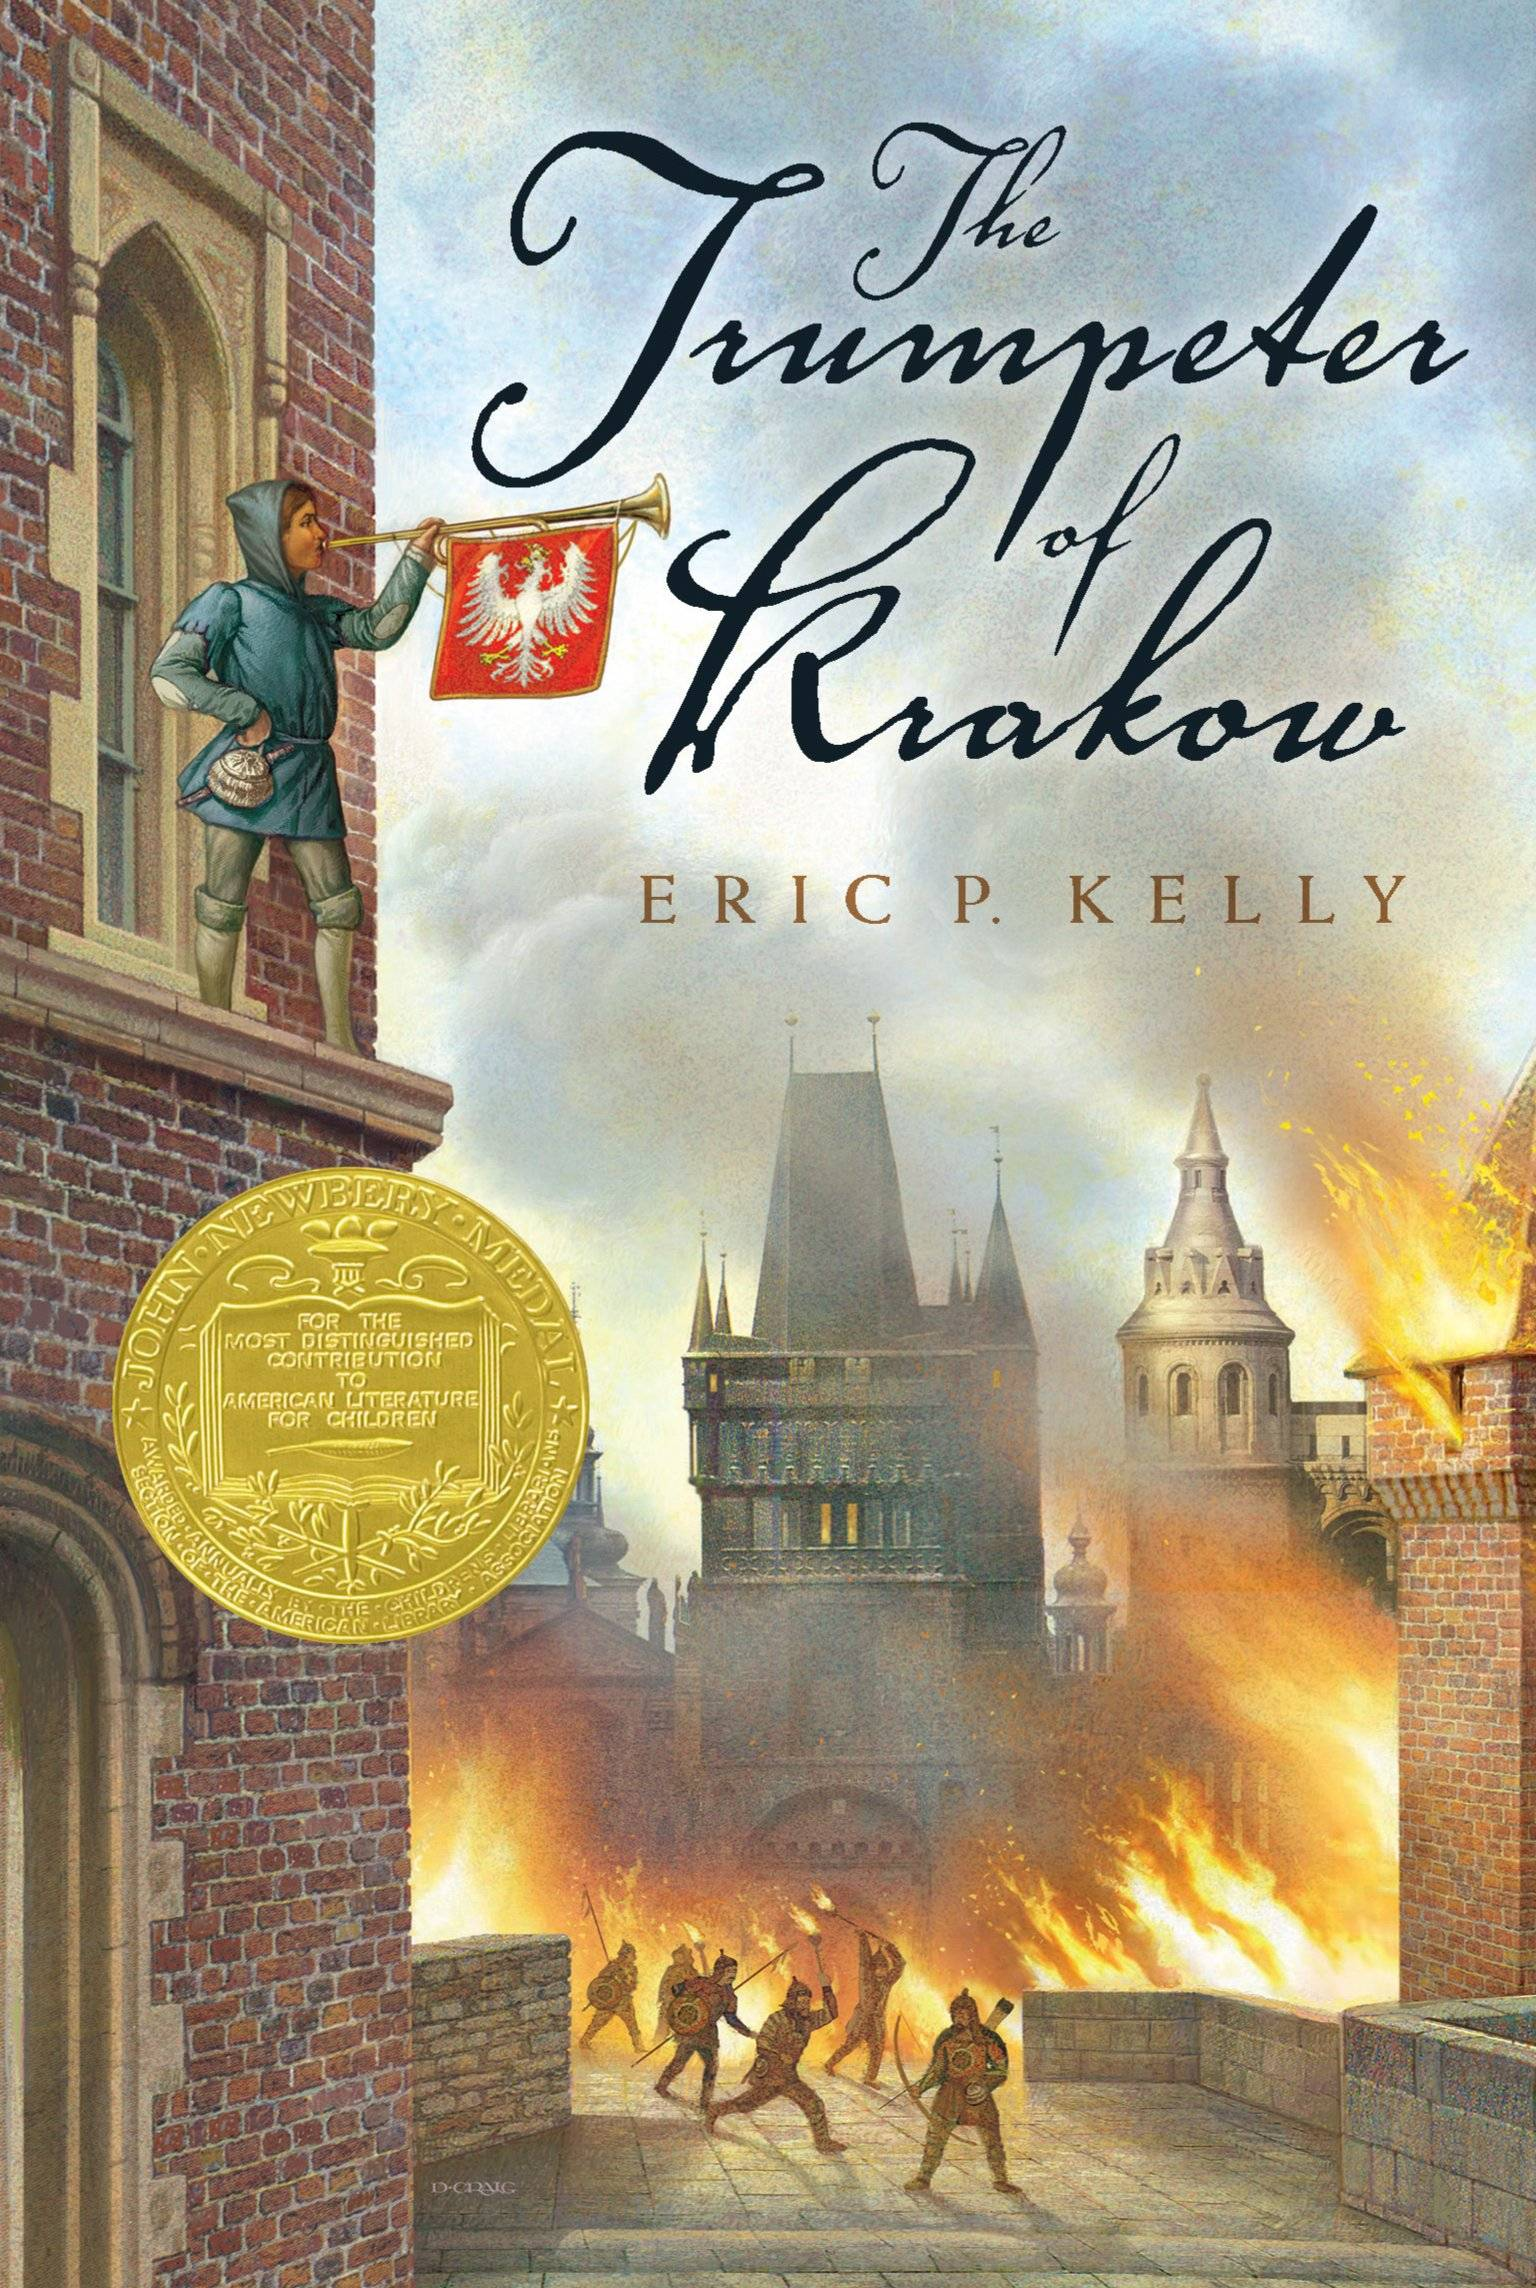 The Trumpeter of Krakow by Eric P Kelly